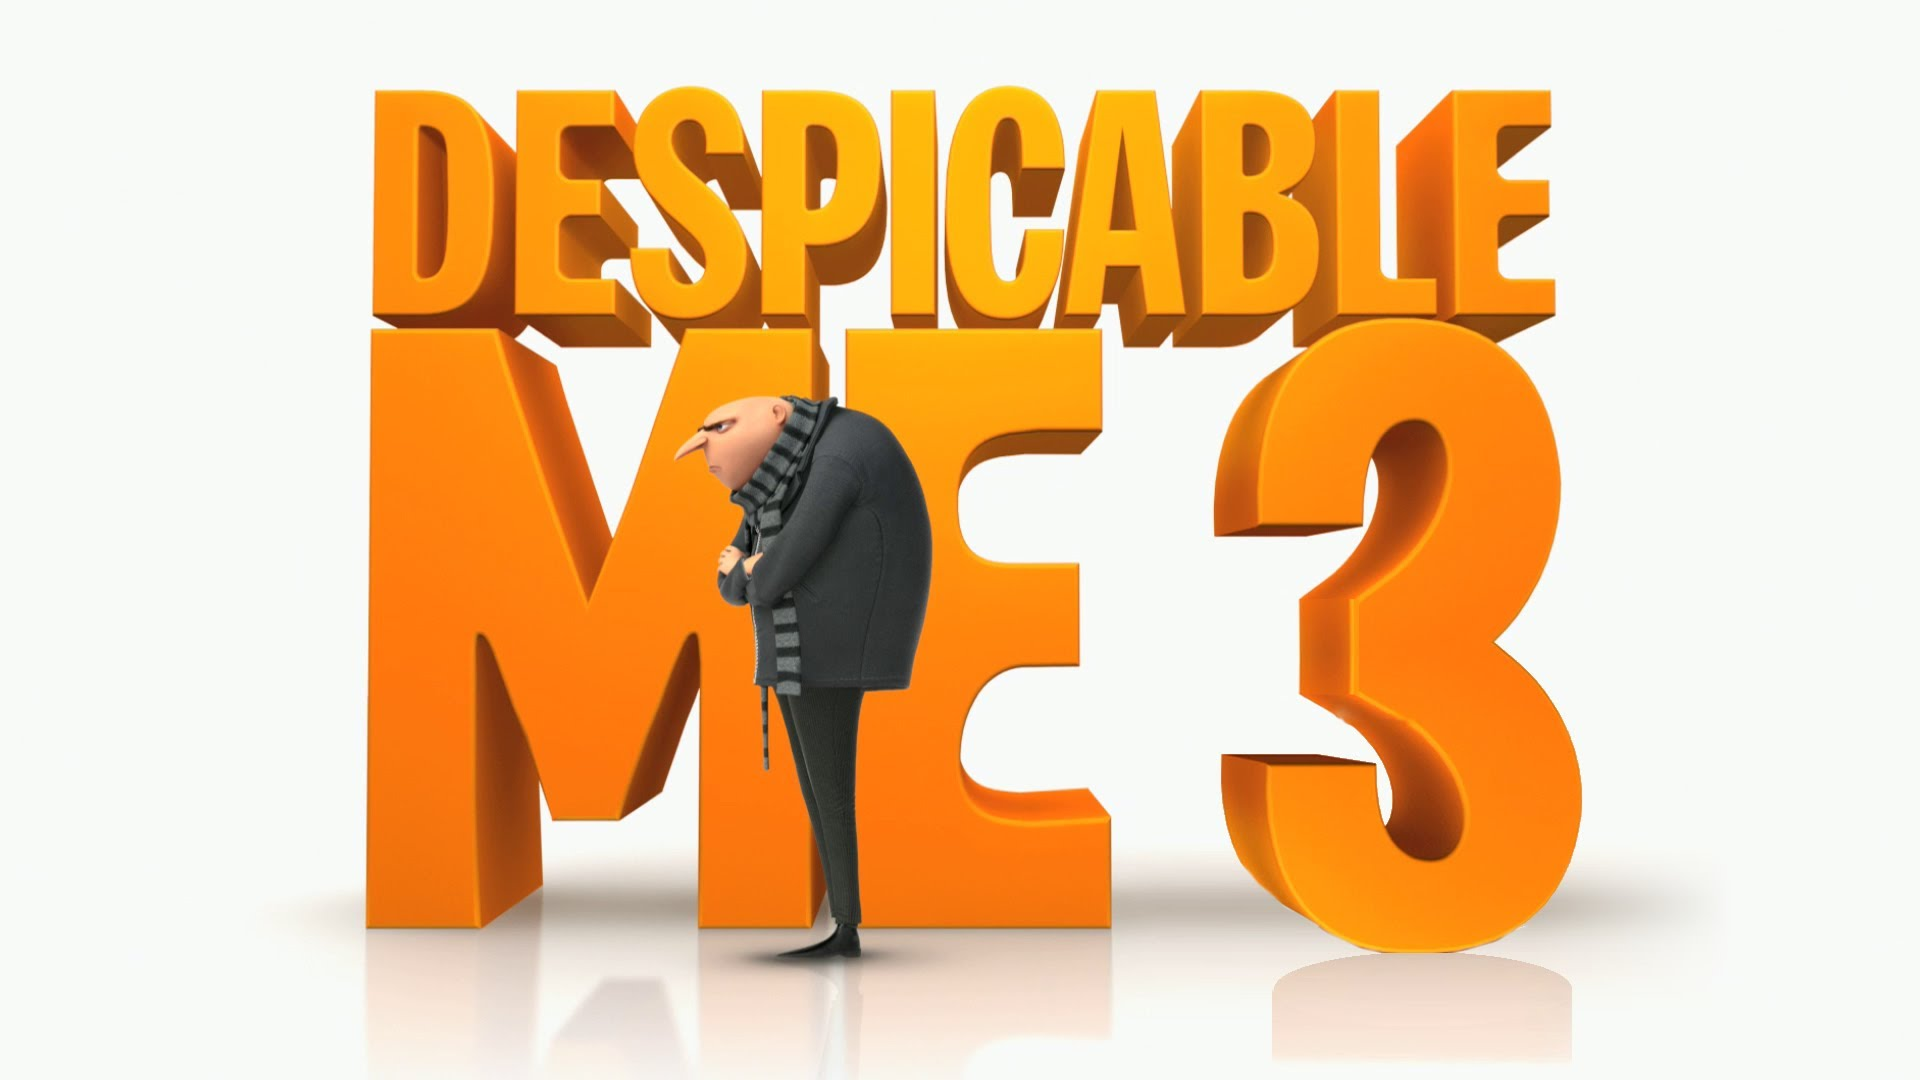 despicable-me-3-movie-banner